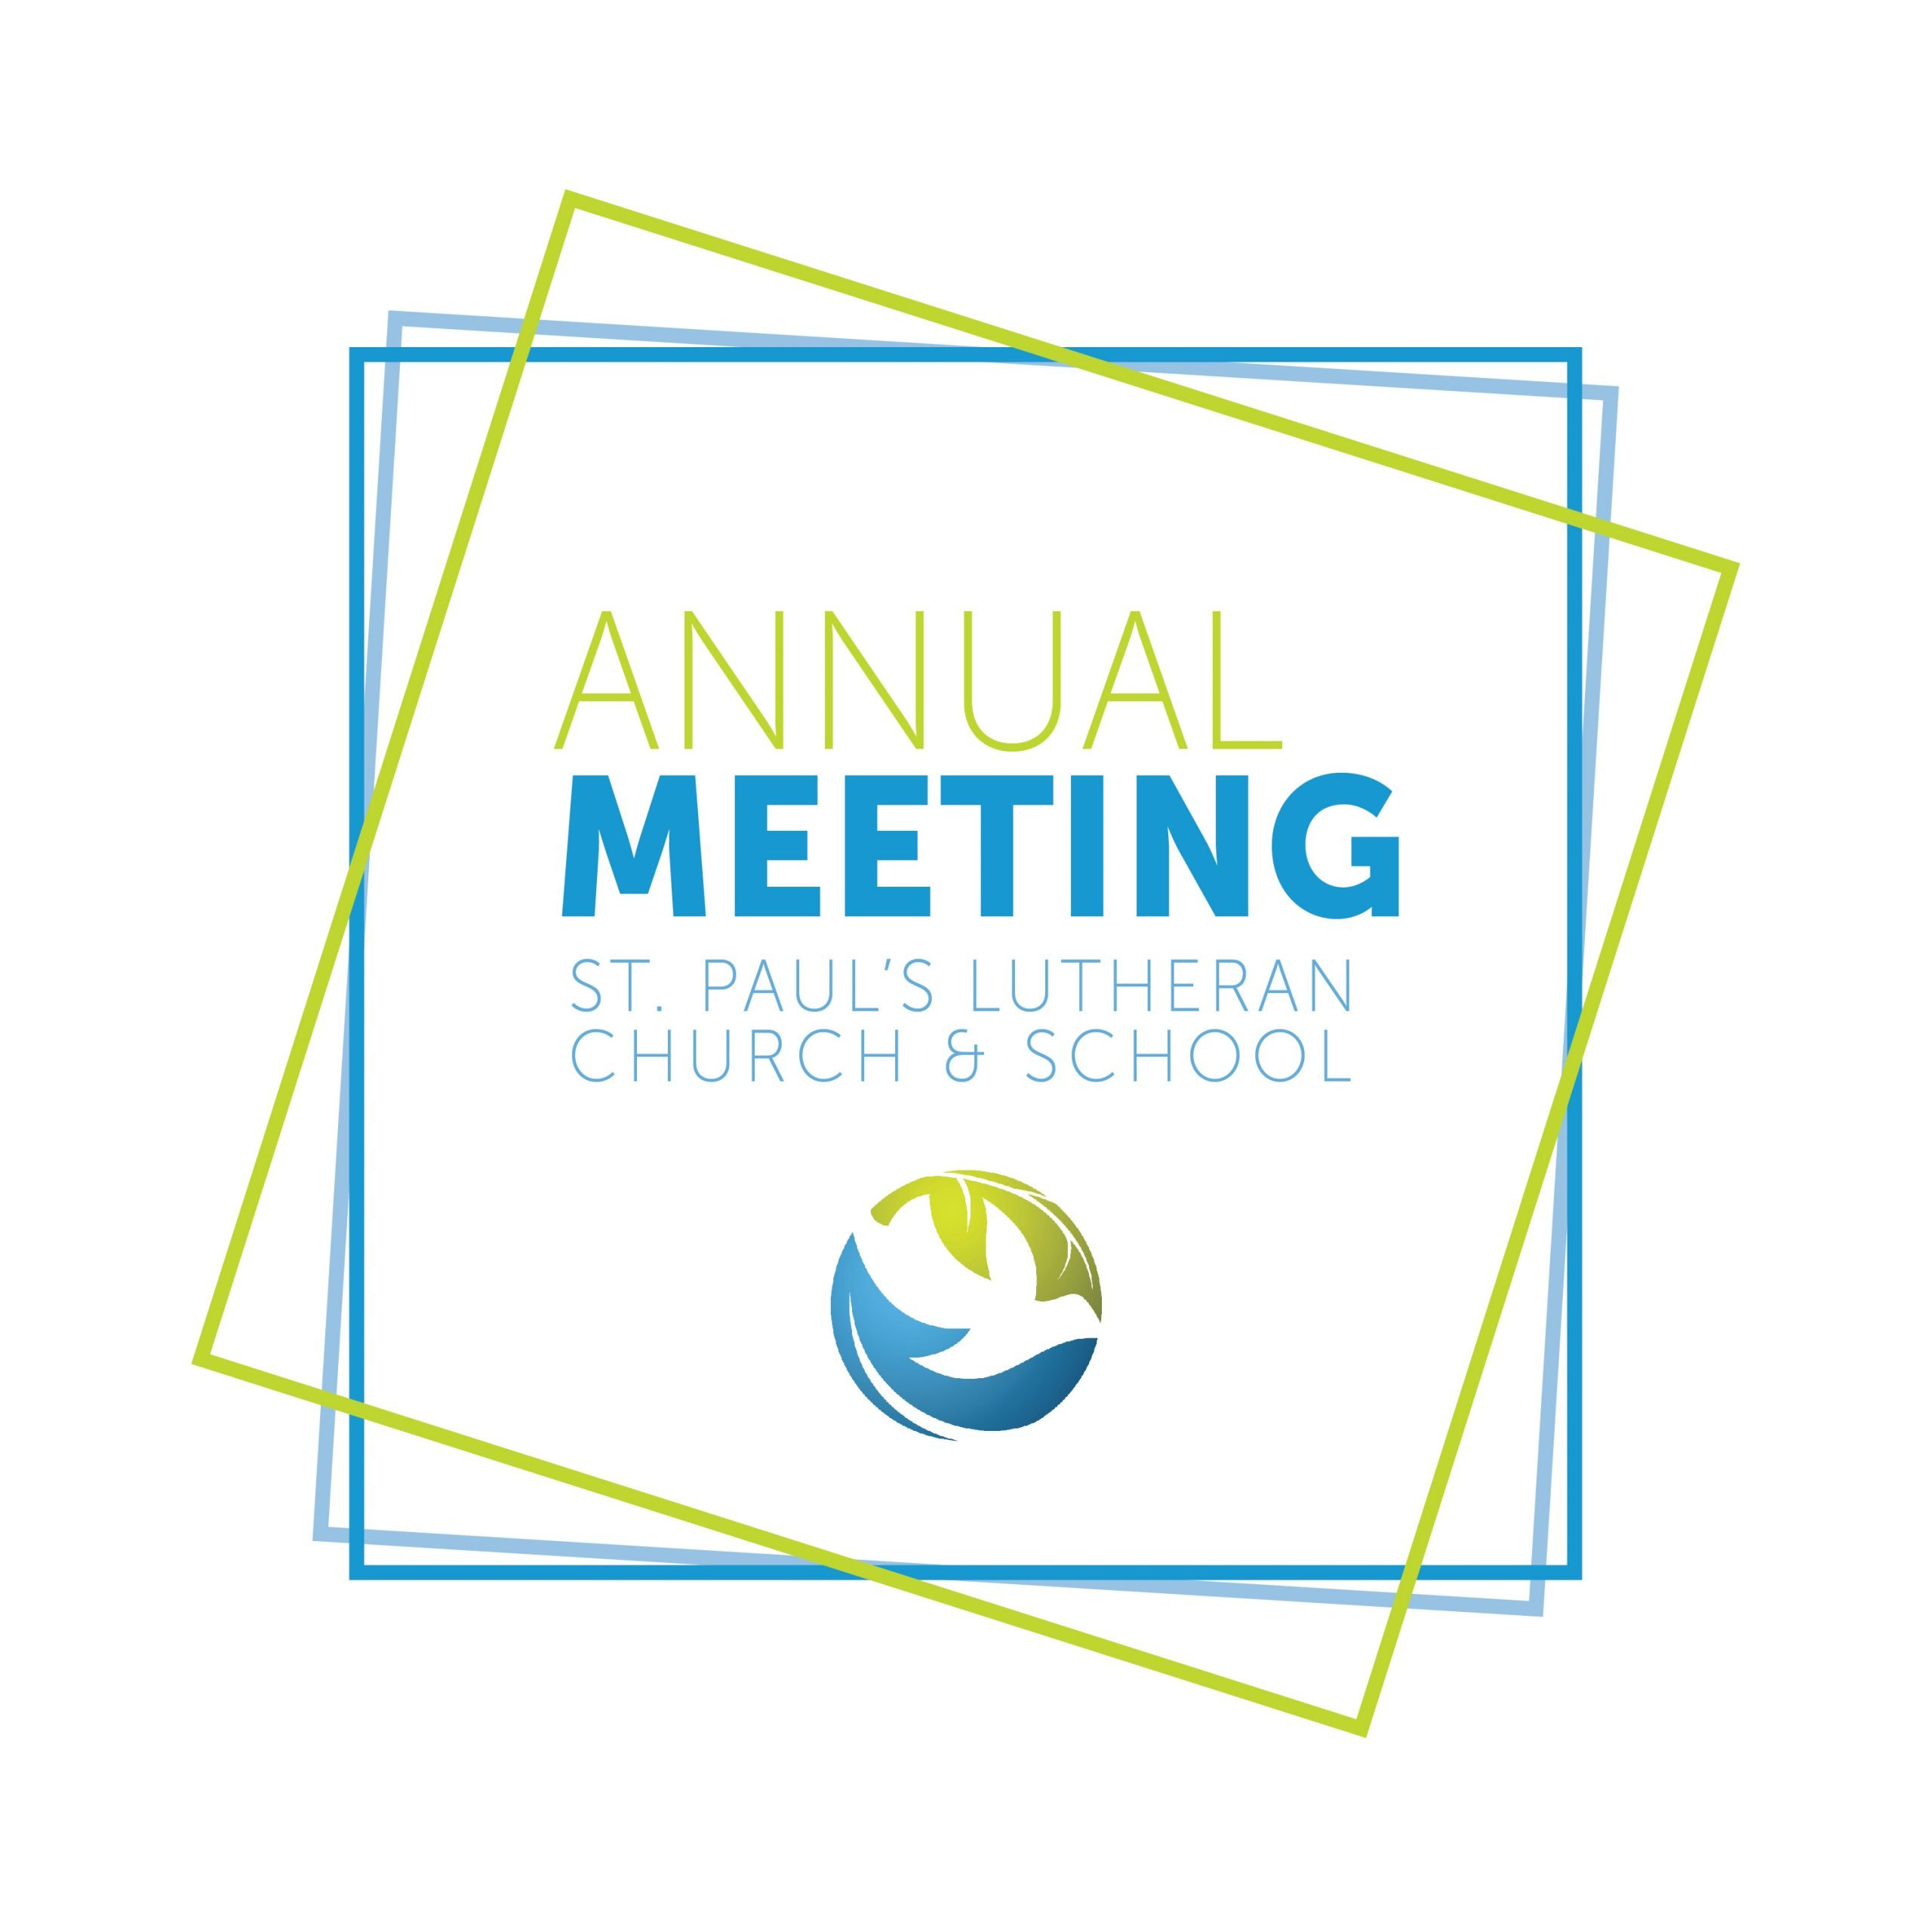 Annual Meeting Square-01